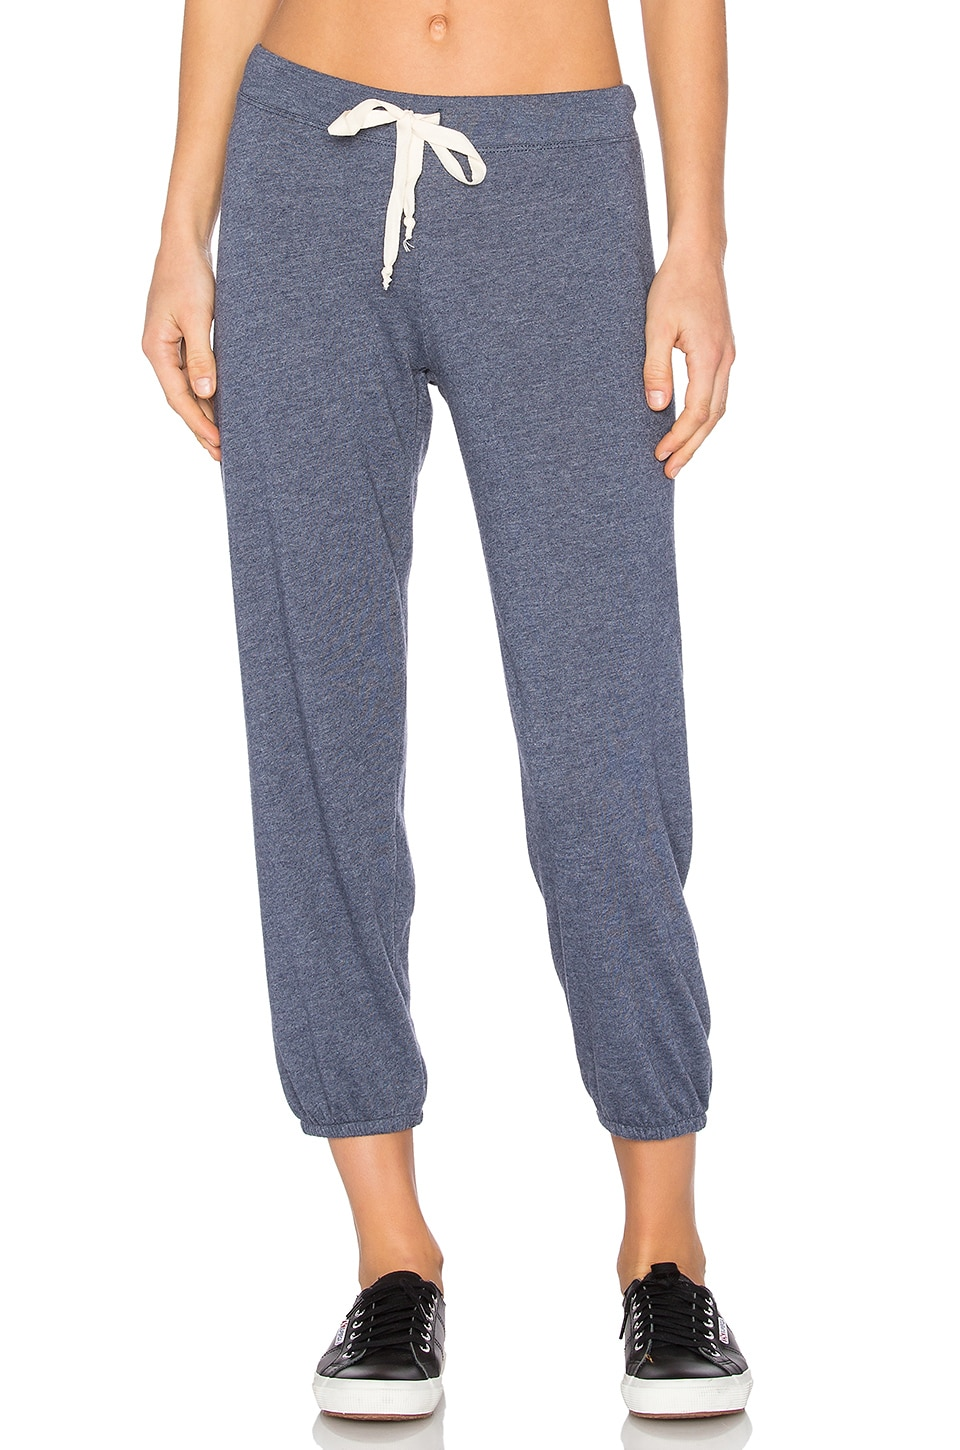 Nation LTD Medora Capri Sweatpant in Deep Blue